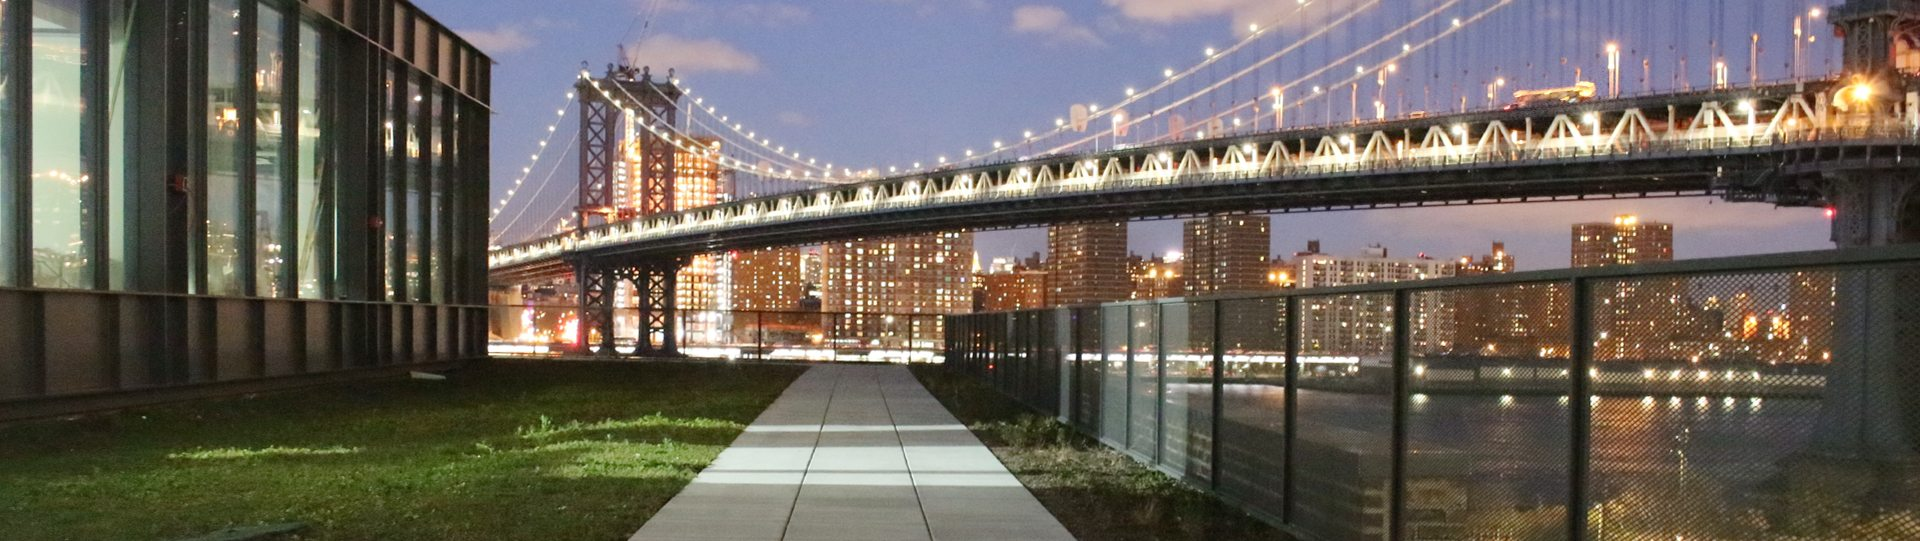 Skydeck USA Paver Pedestal Rooftop Patio in New York City